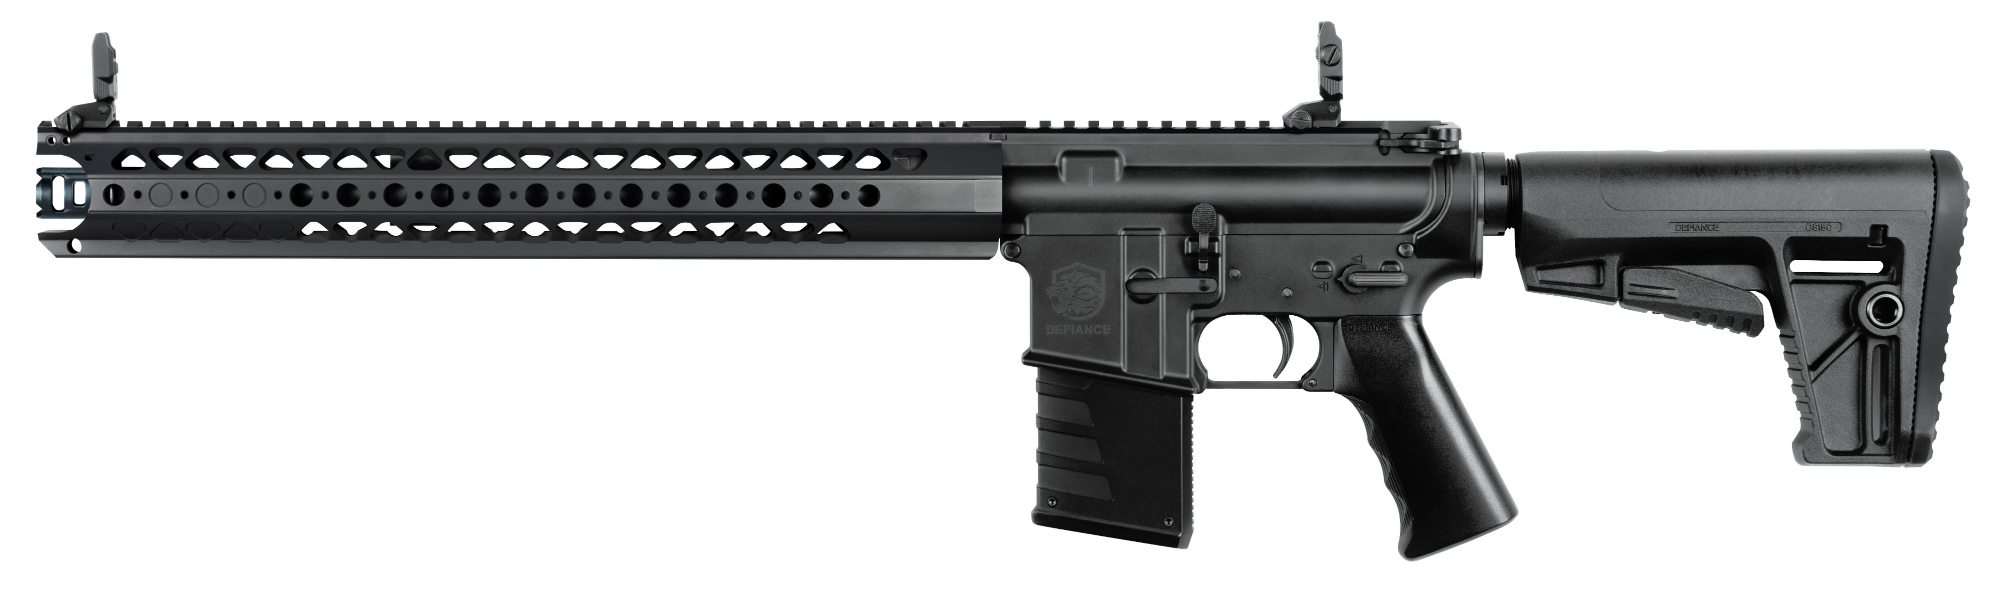 The DMK22 LVOA is equipped with the War Sport LVOA modular hand guard.